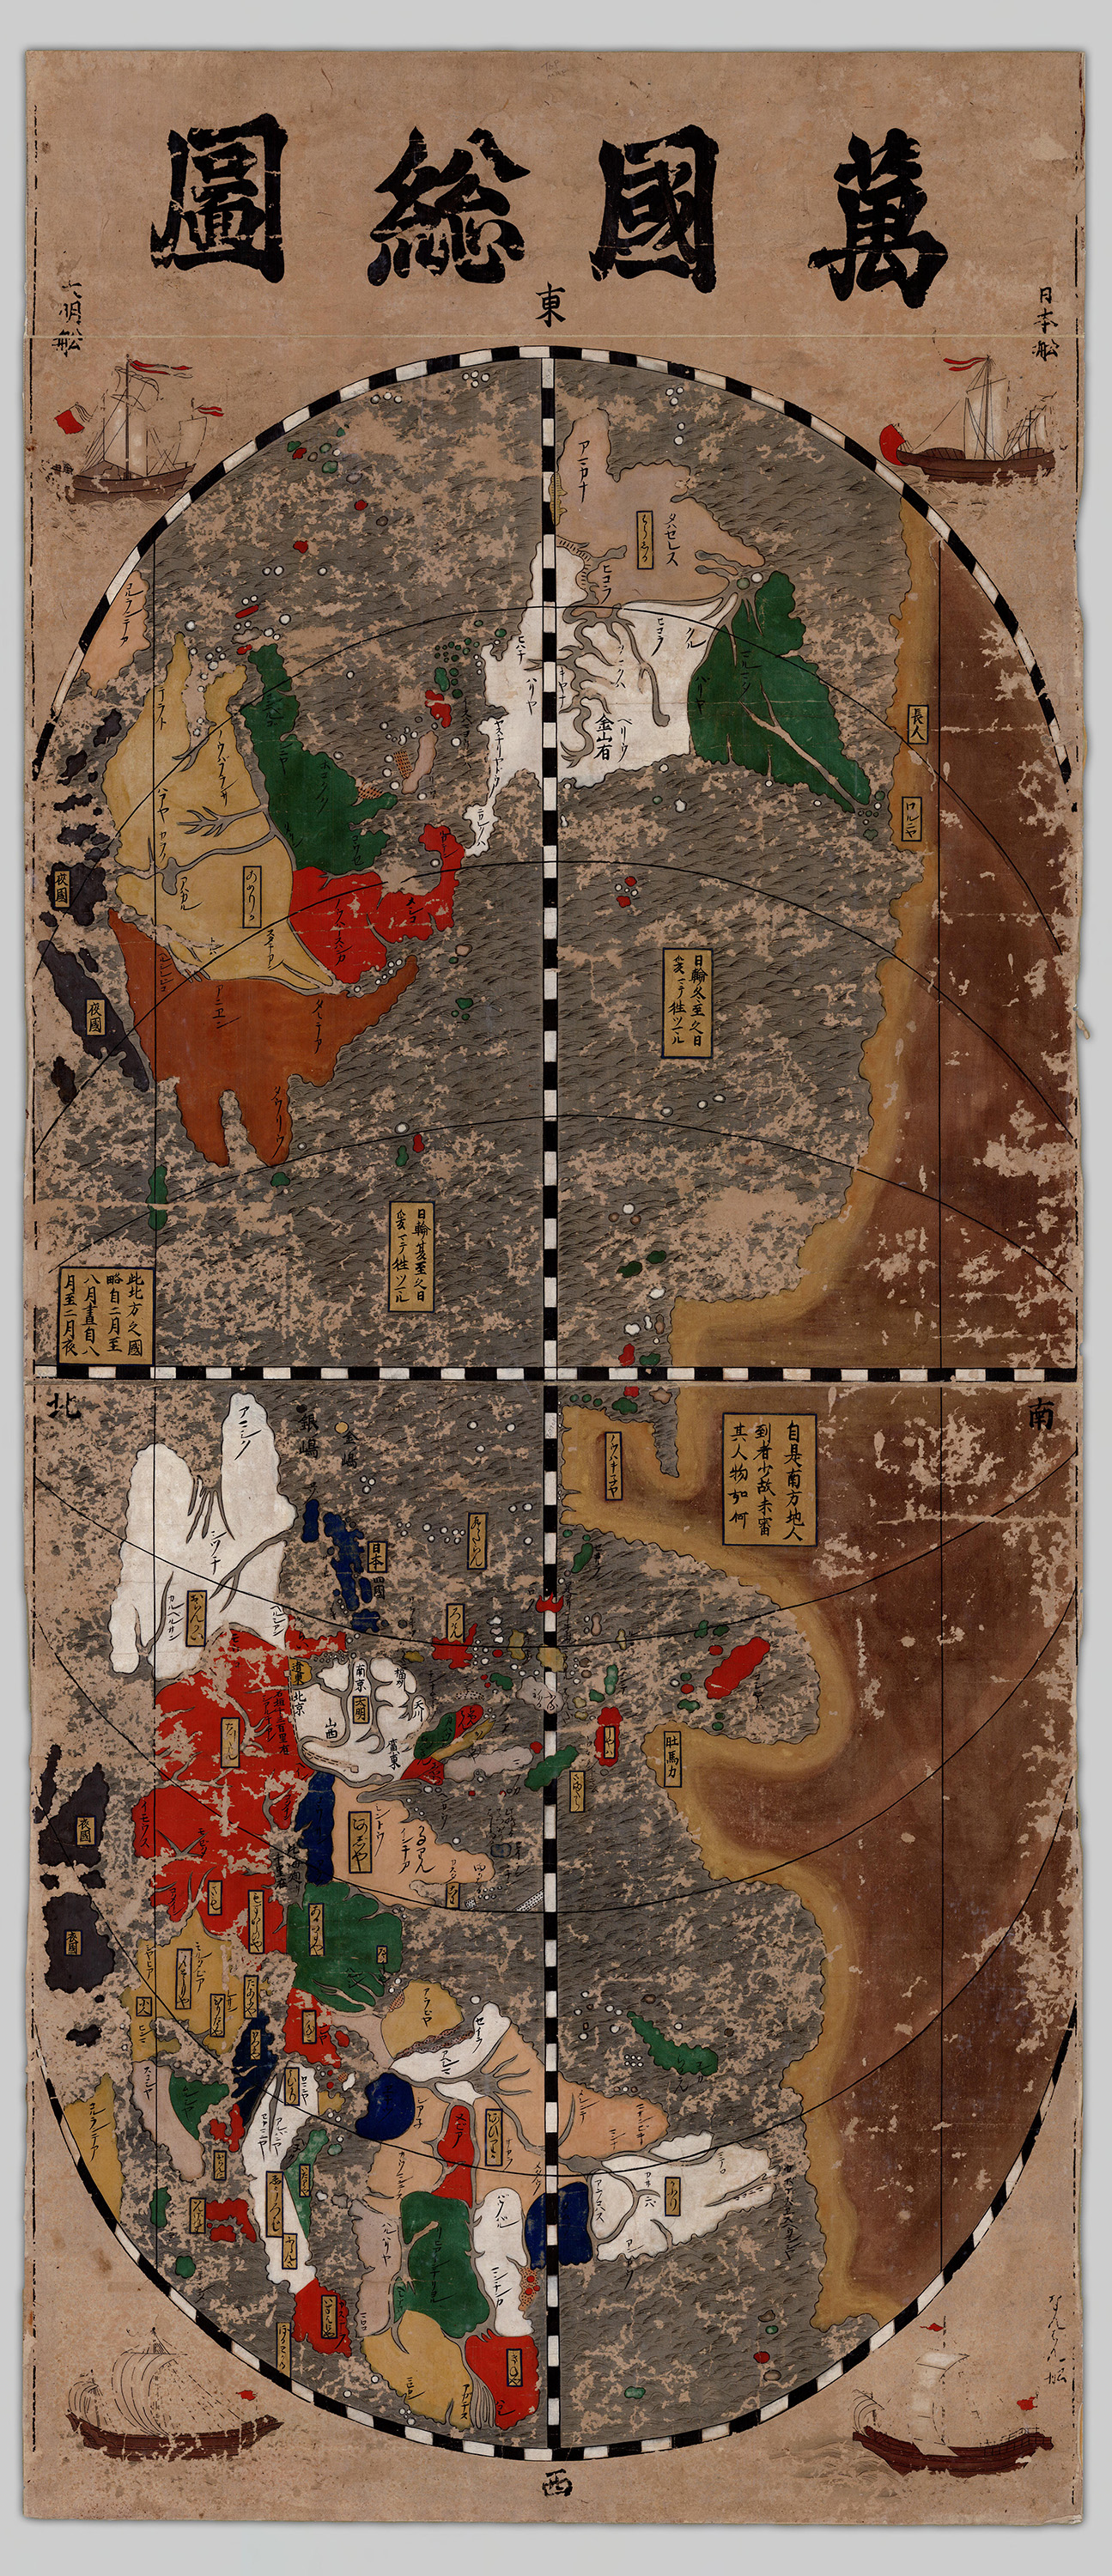 A map from the late seventeenth century depicting a Japanese image of the contemporary world.